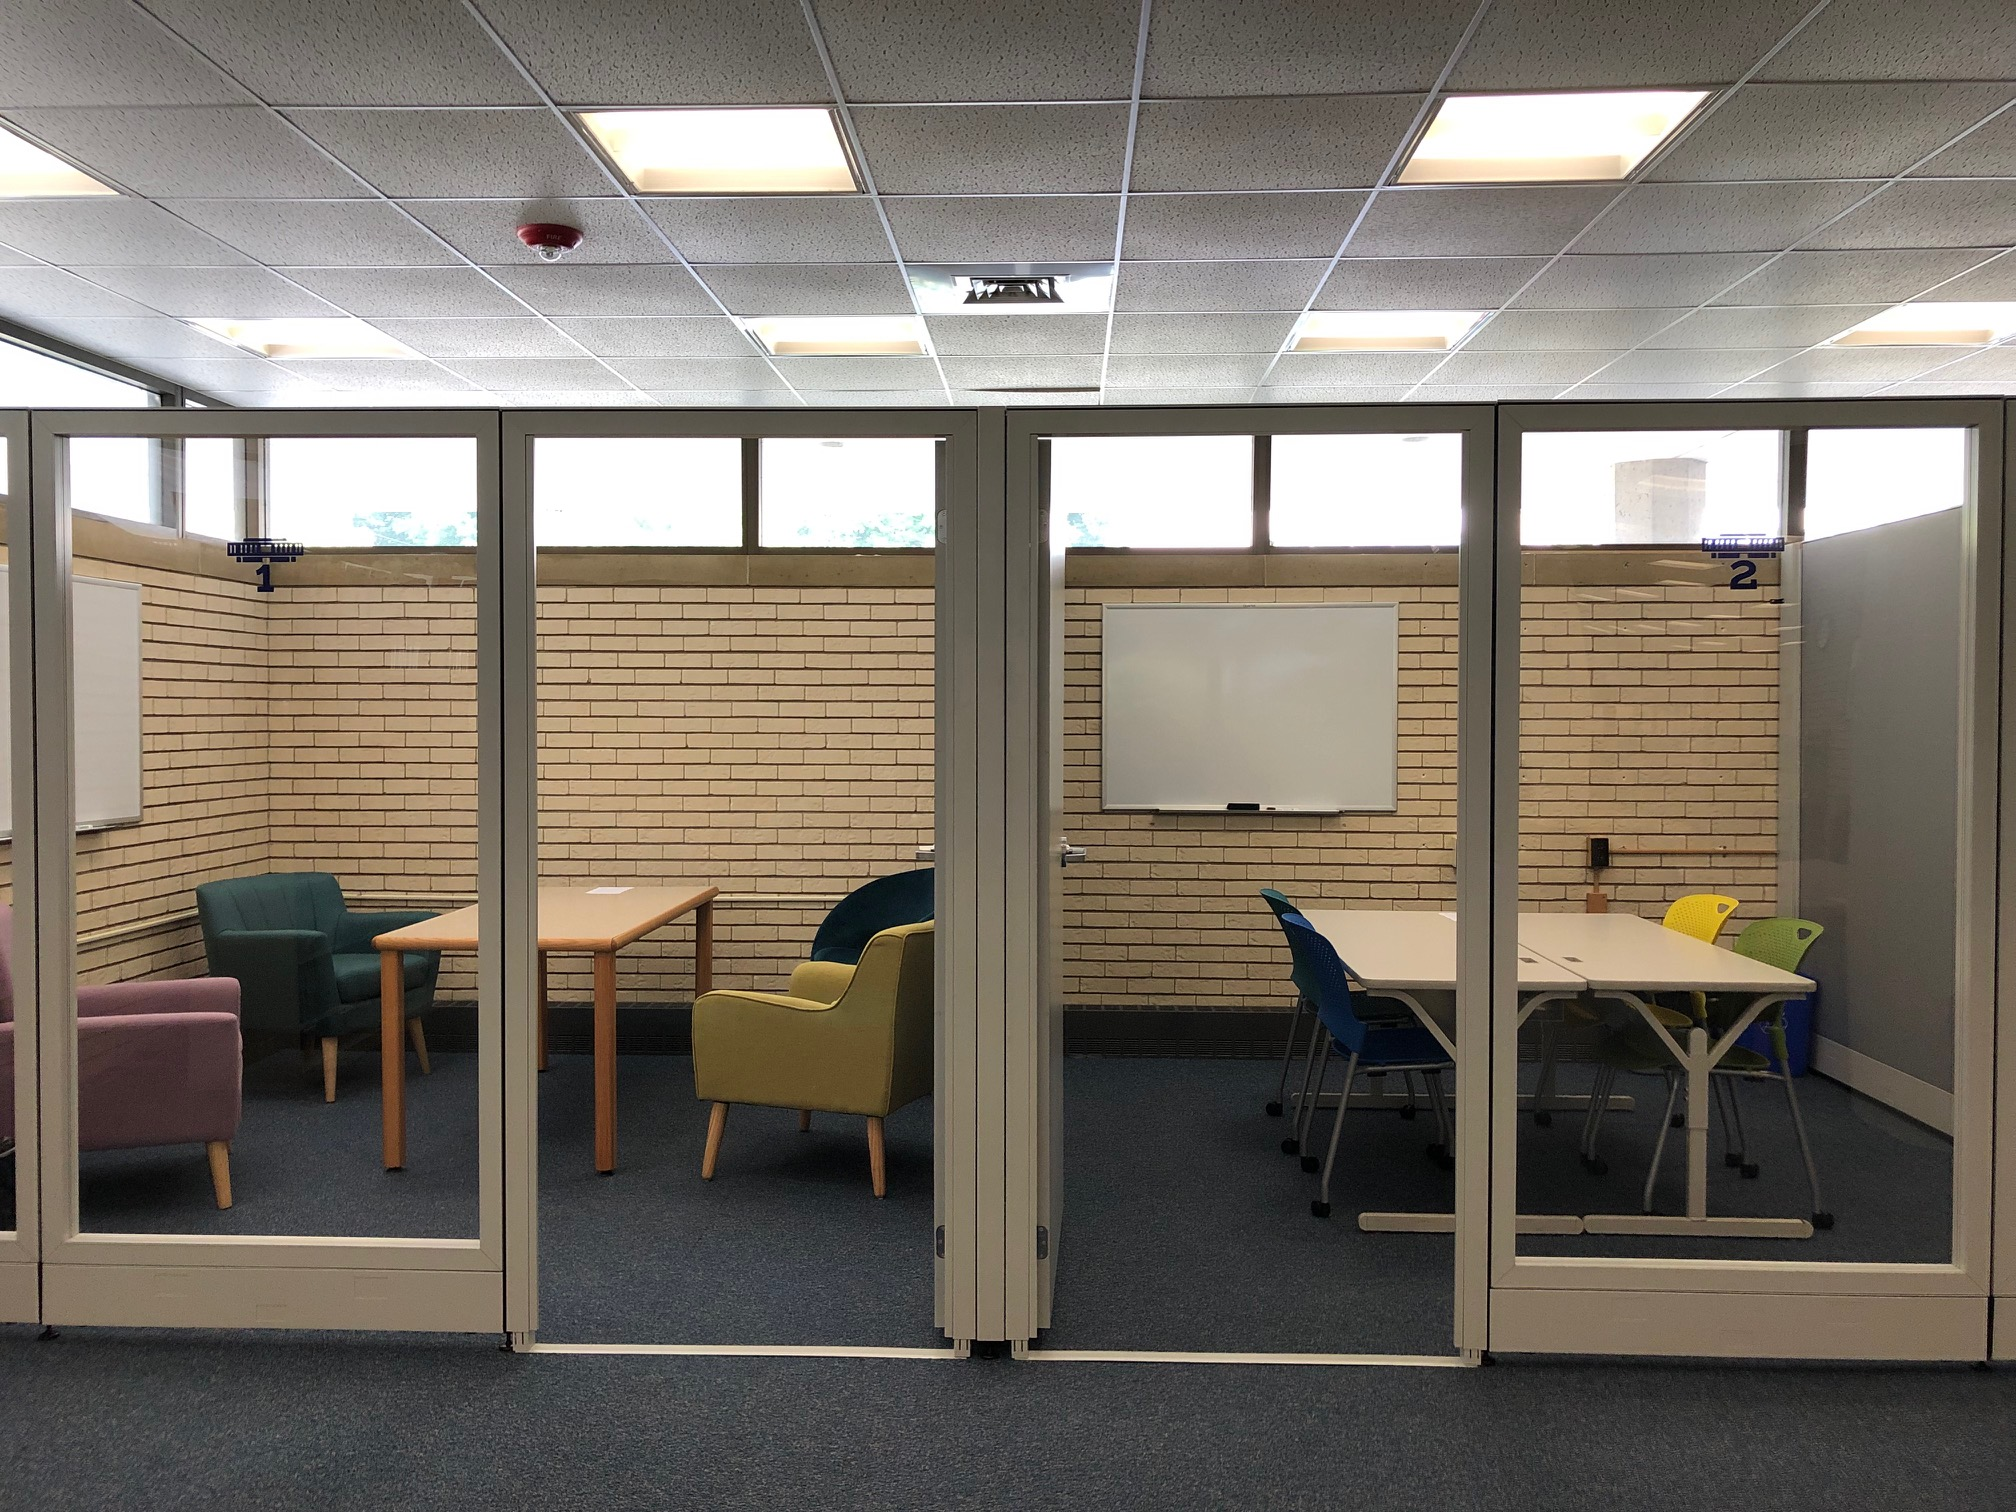 New study rooms in library